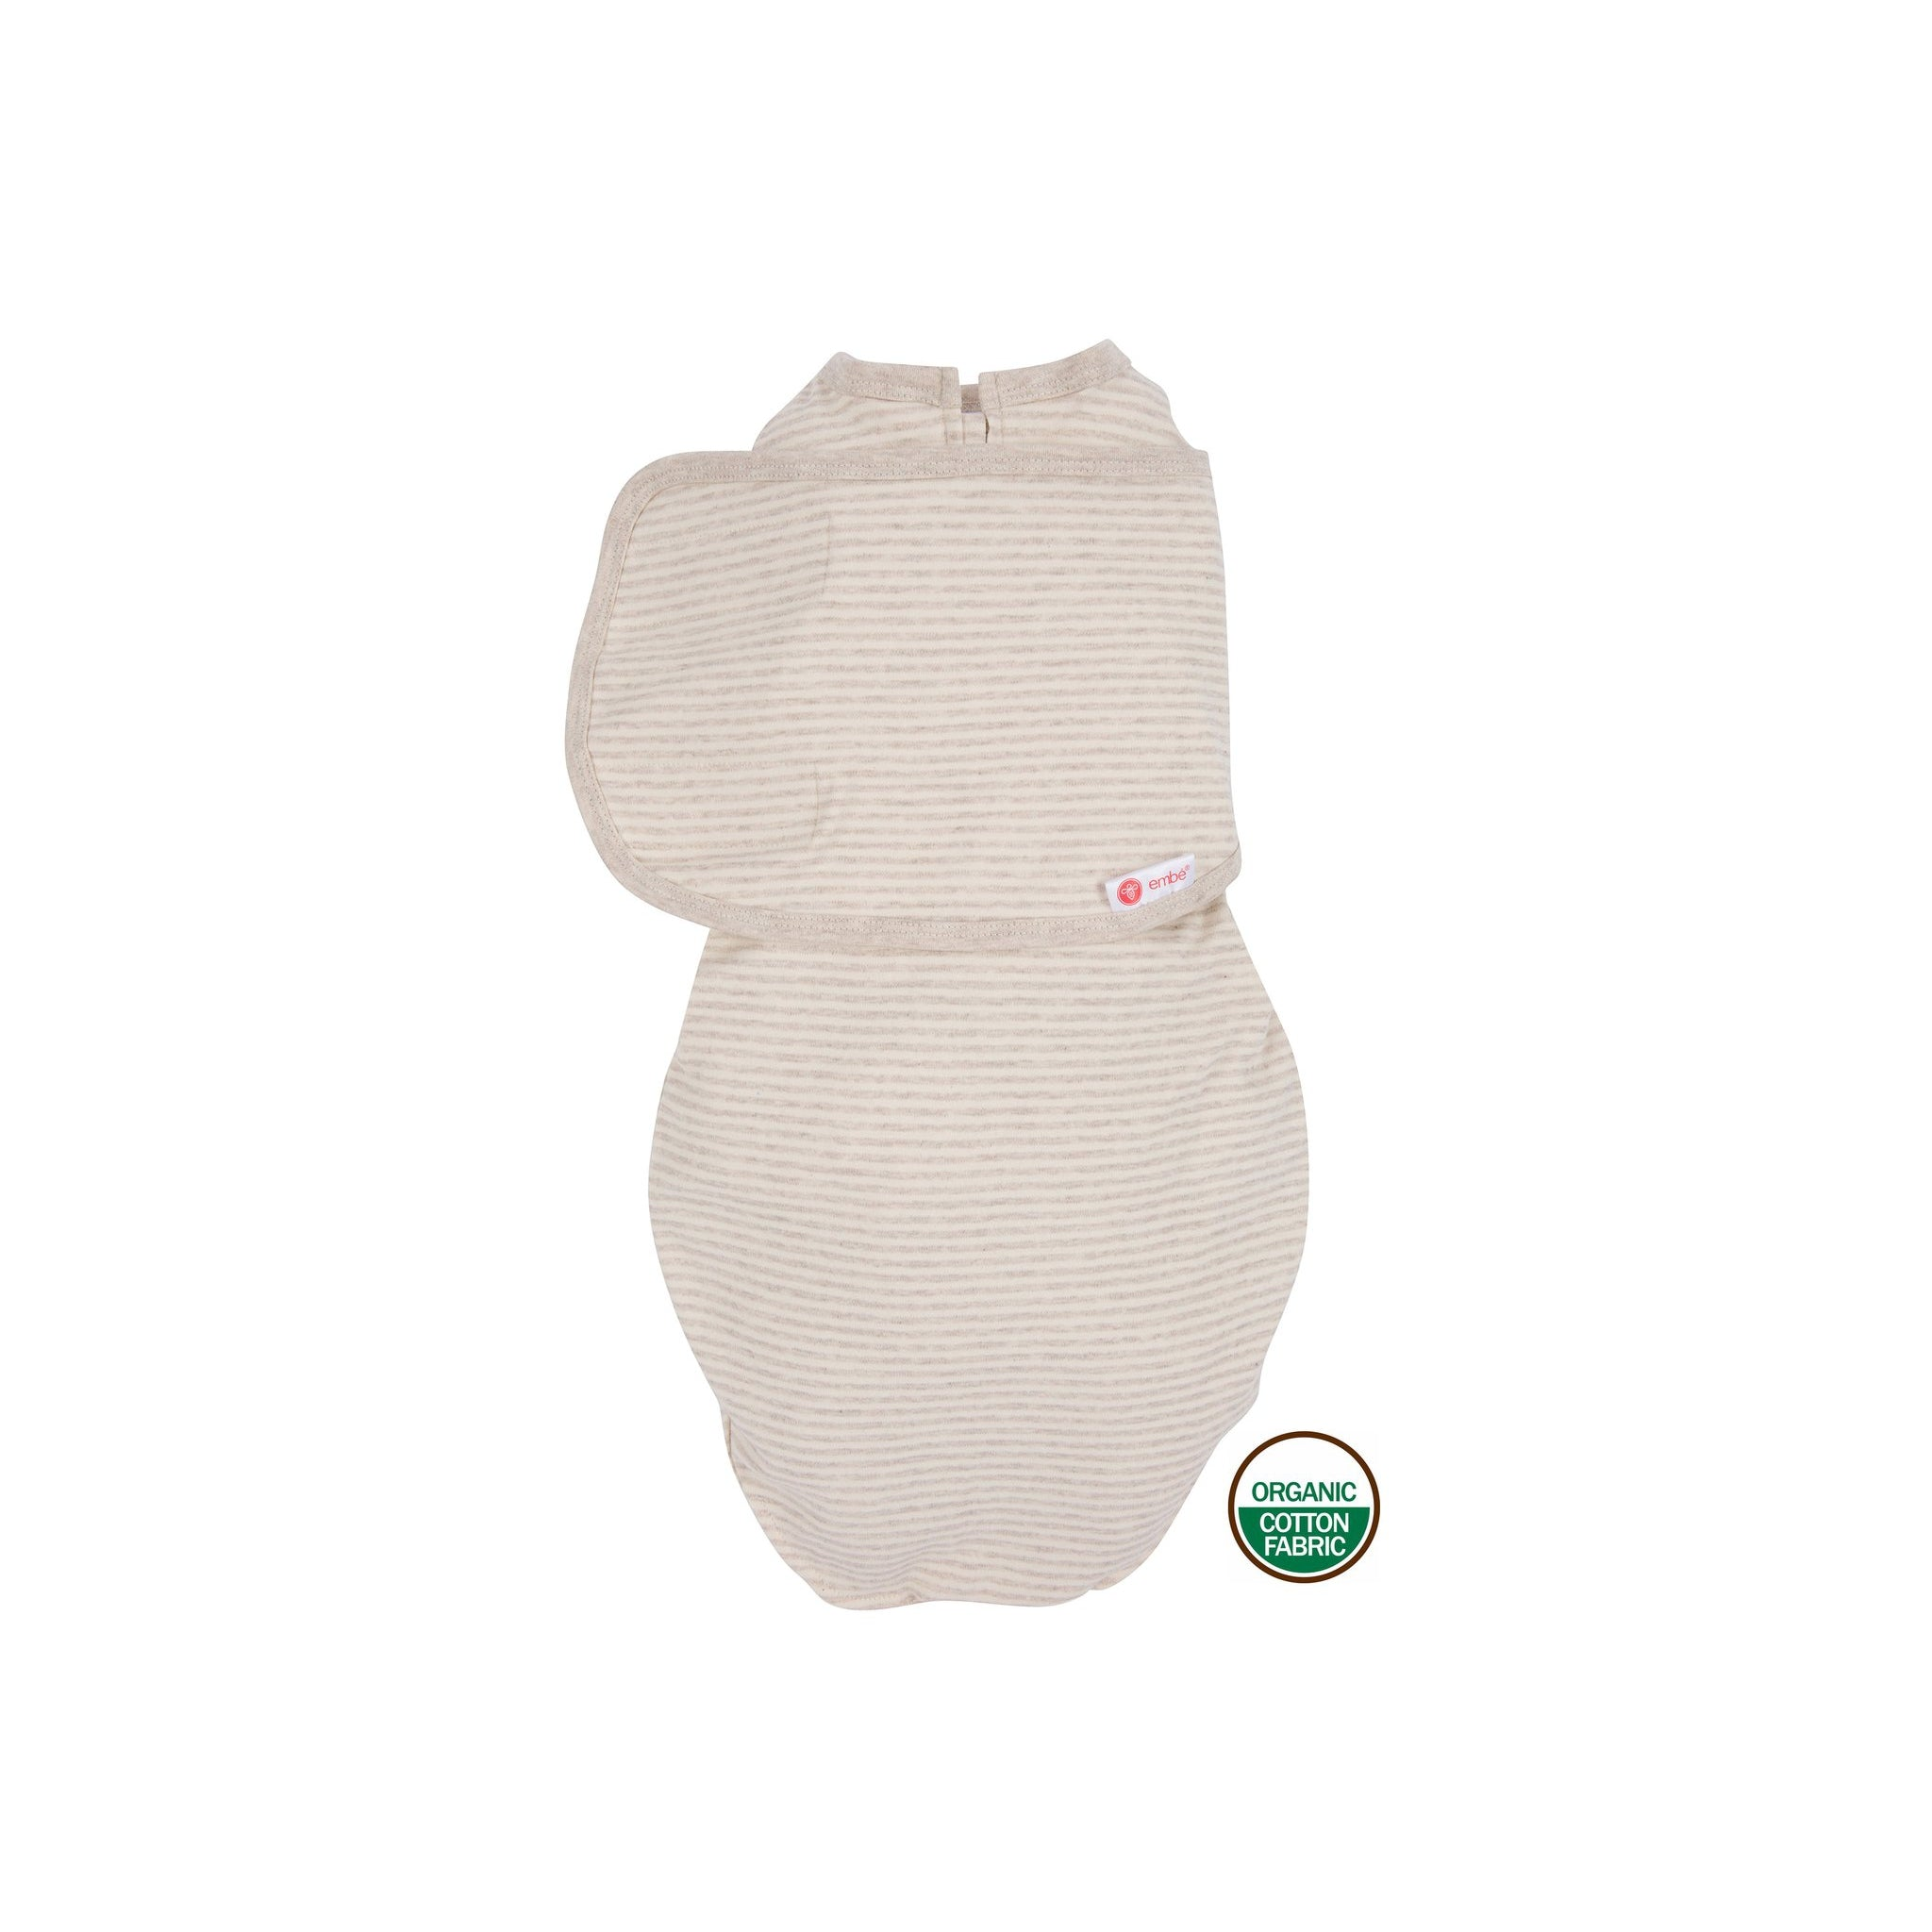 Starter Swaddle Original